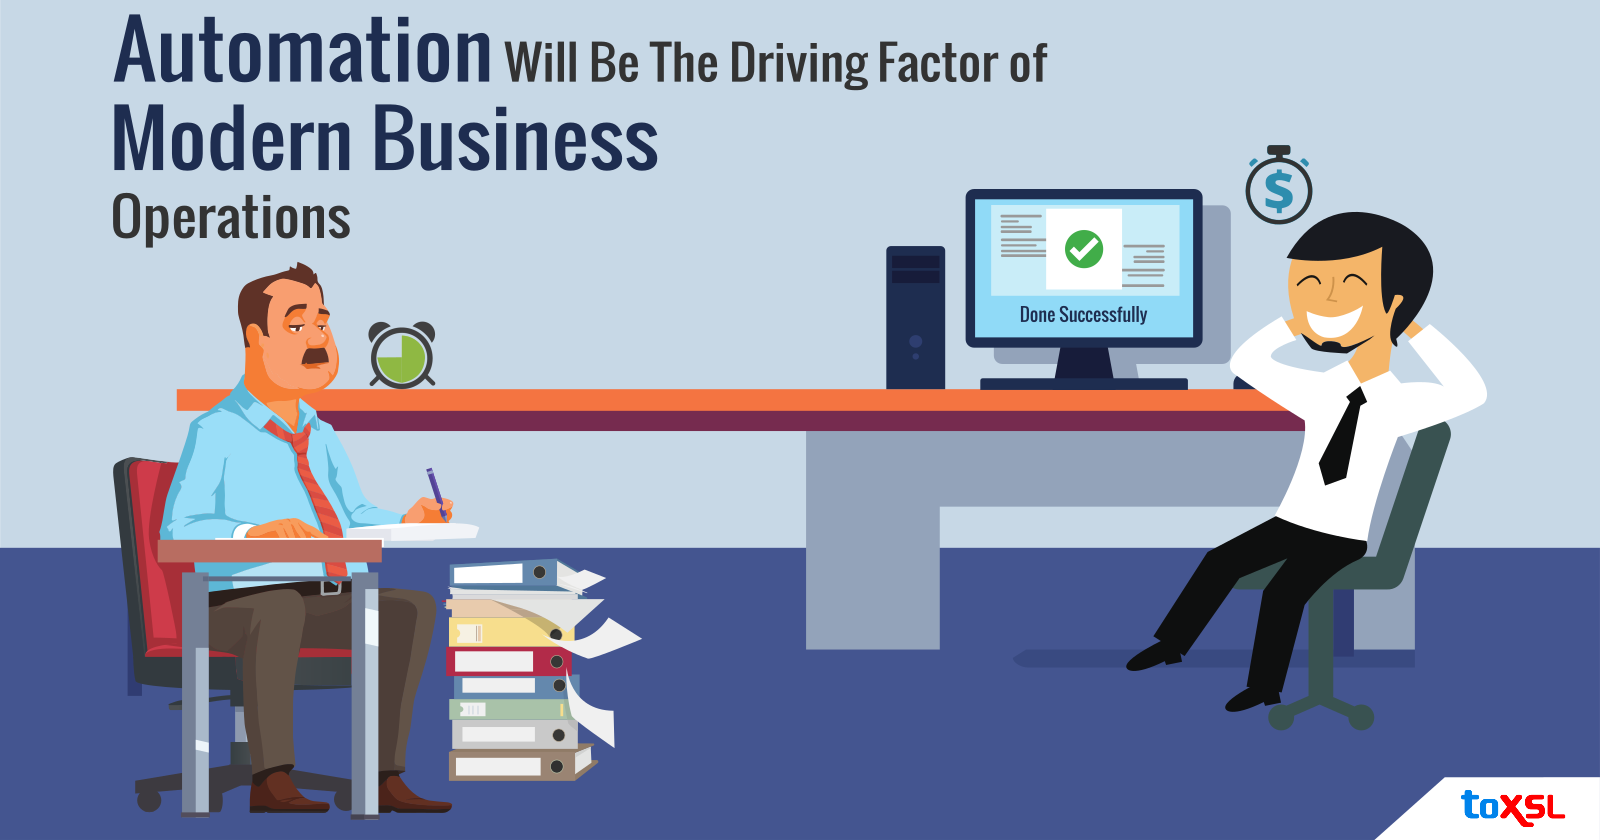 Automation Will Impact Modern Business Strategies and Operations